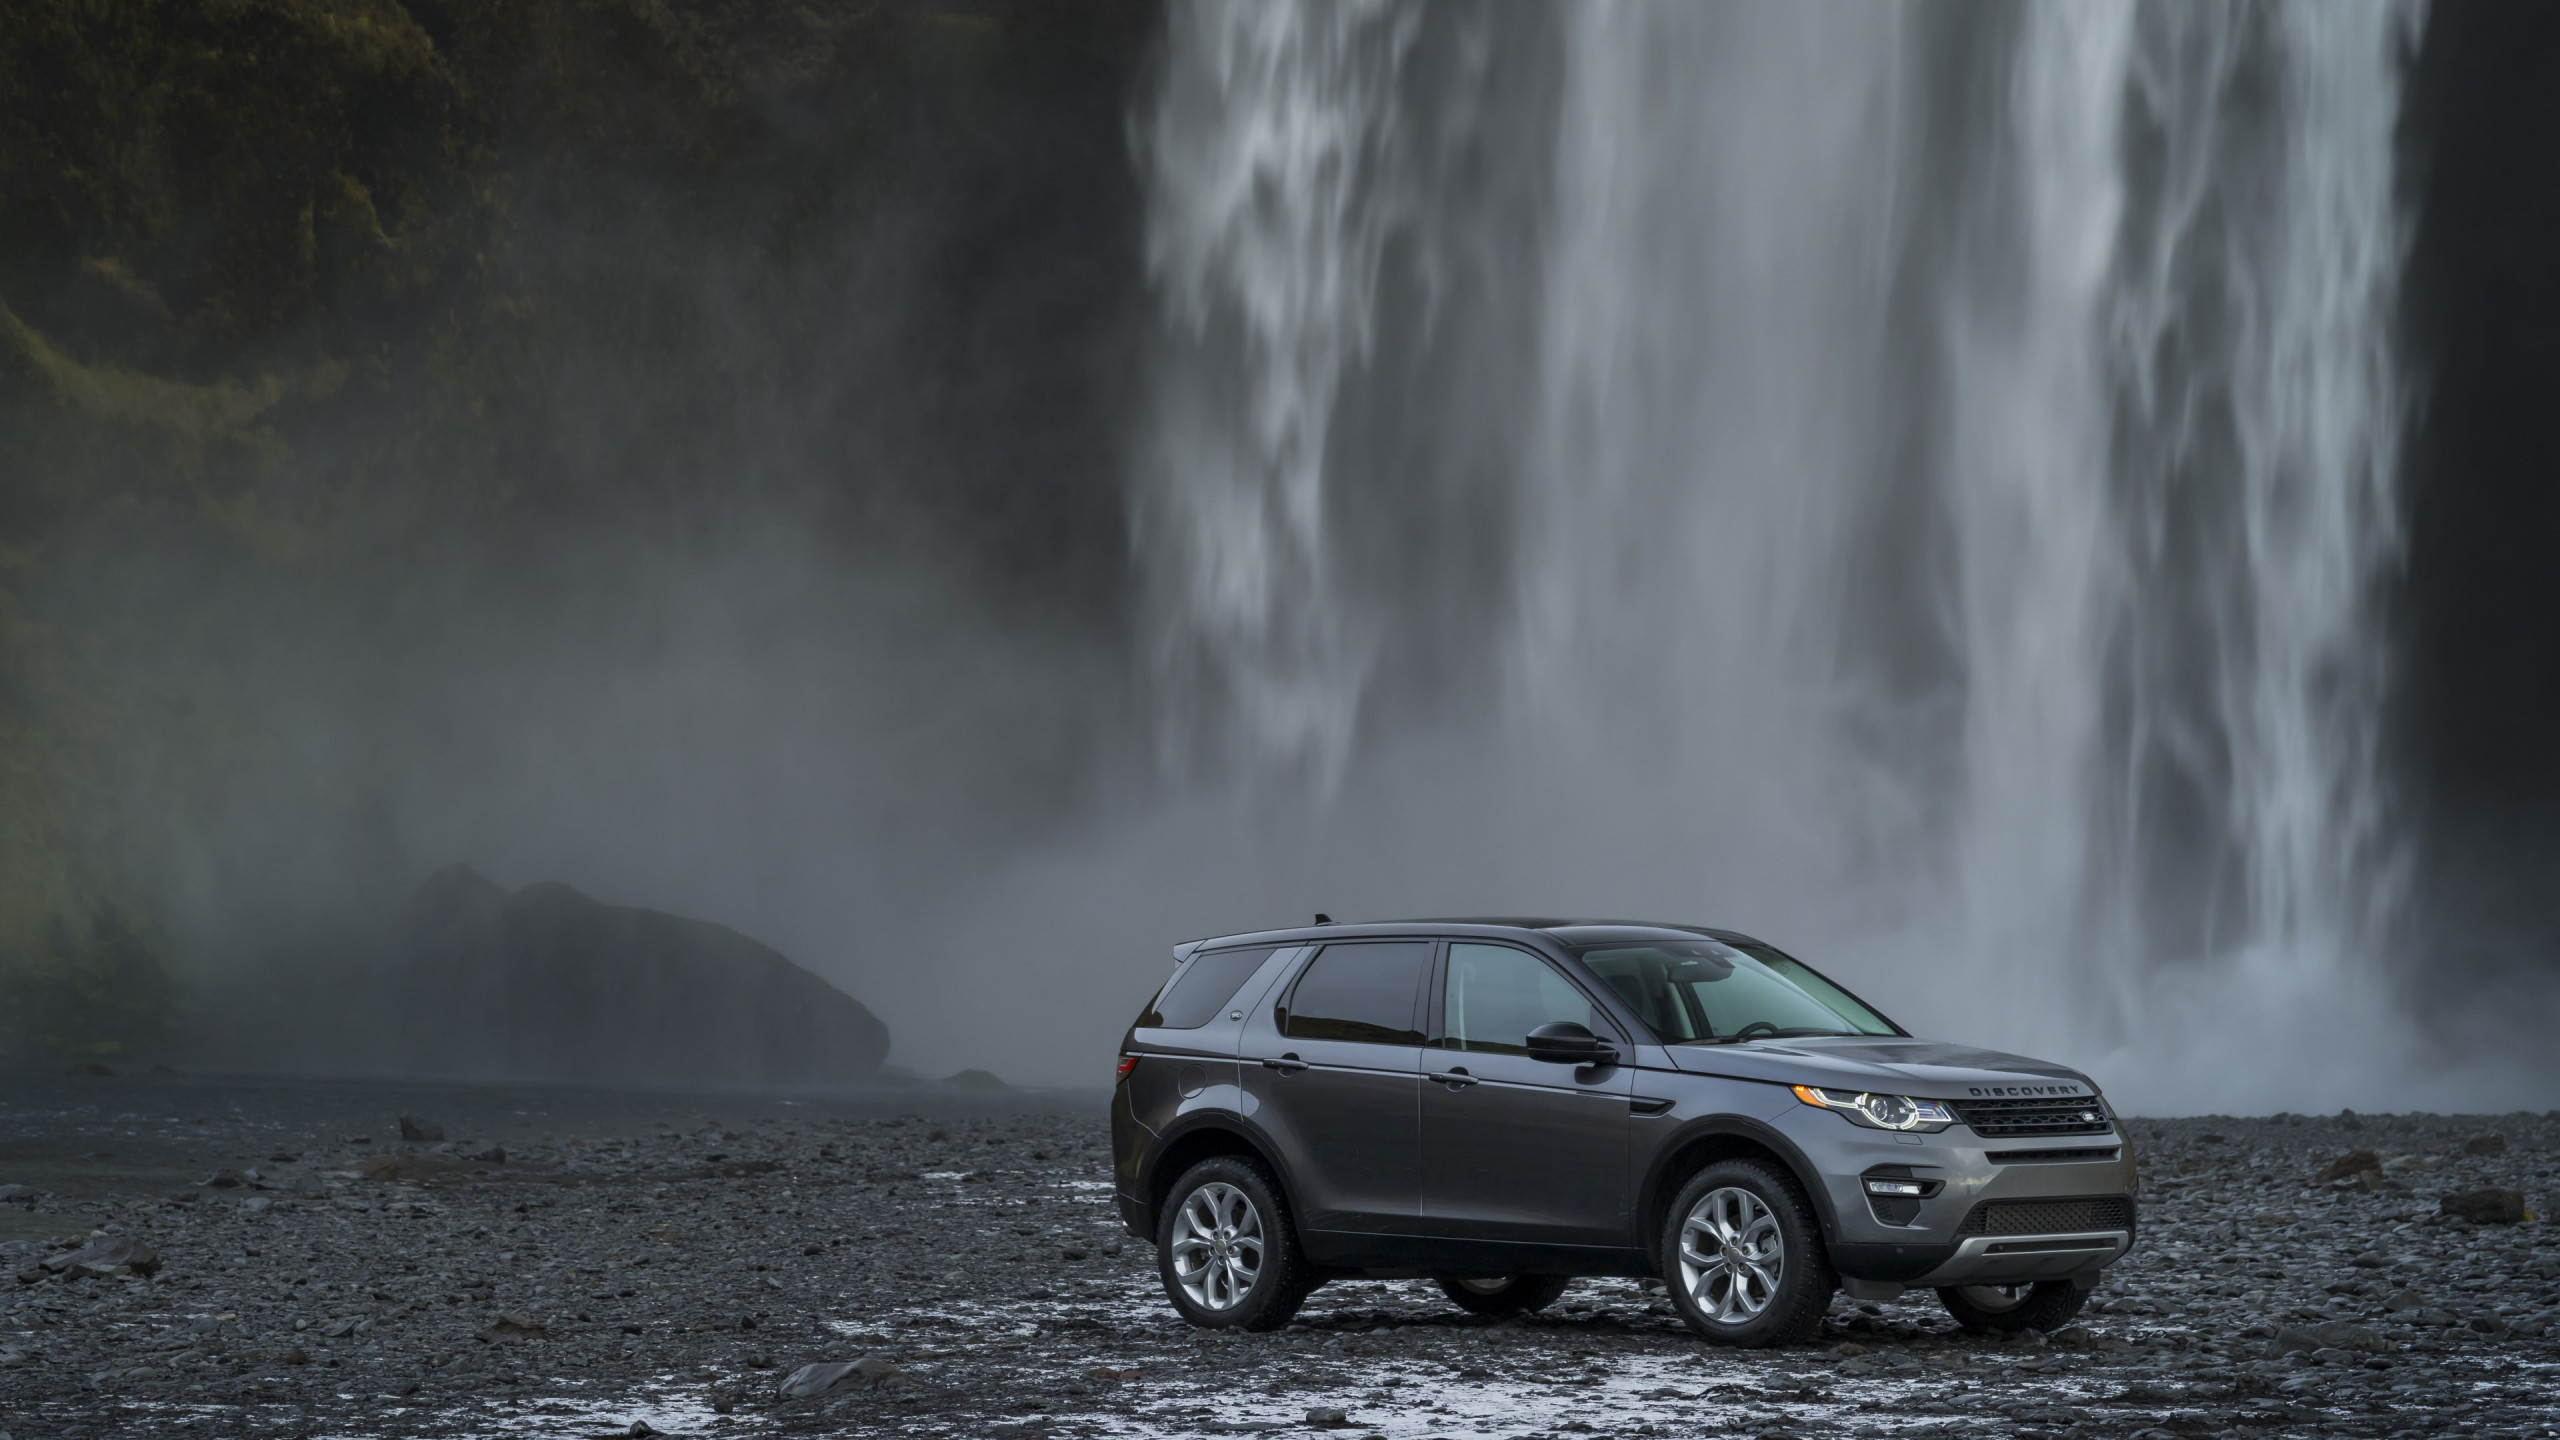 Land Rover Discovery Sport wallpaper 2560x1440